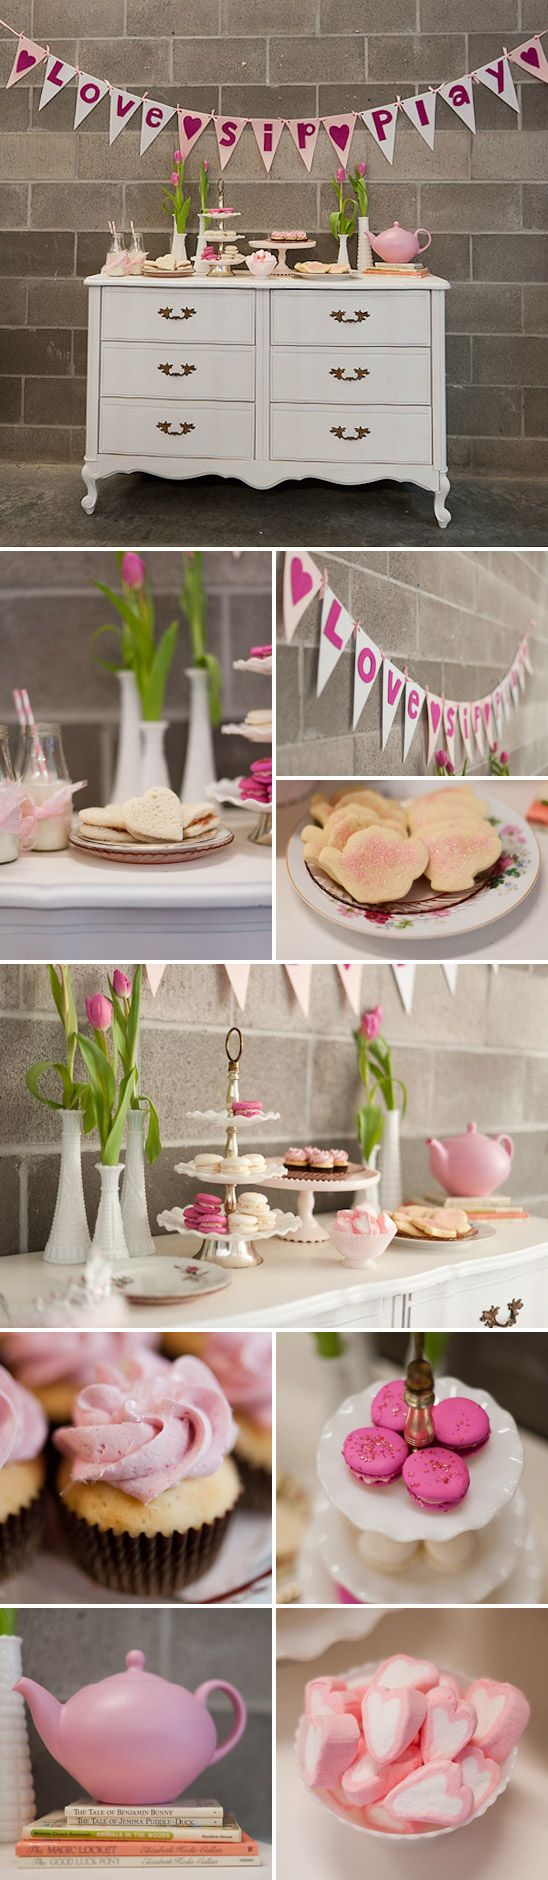 65 best THEME: Tea Party images on Pinterest | Tea party birthday ...